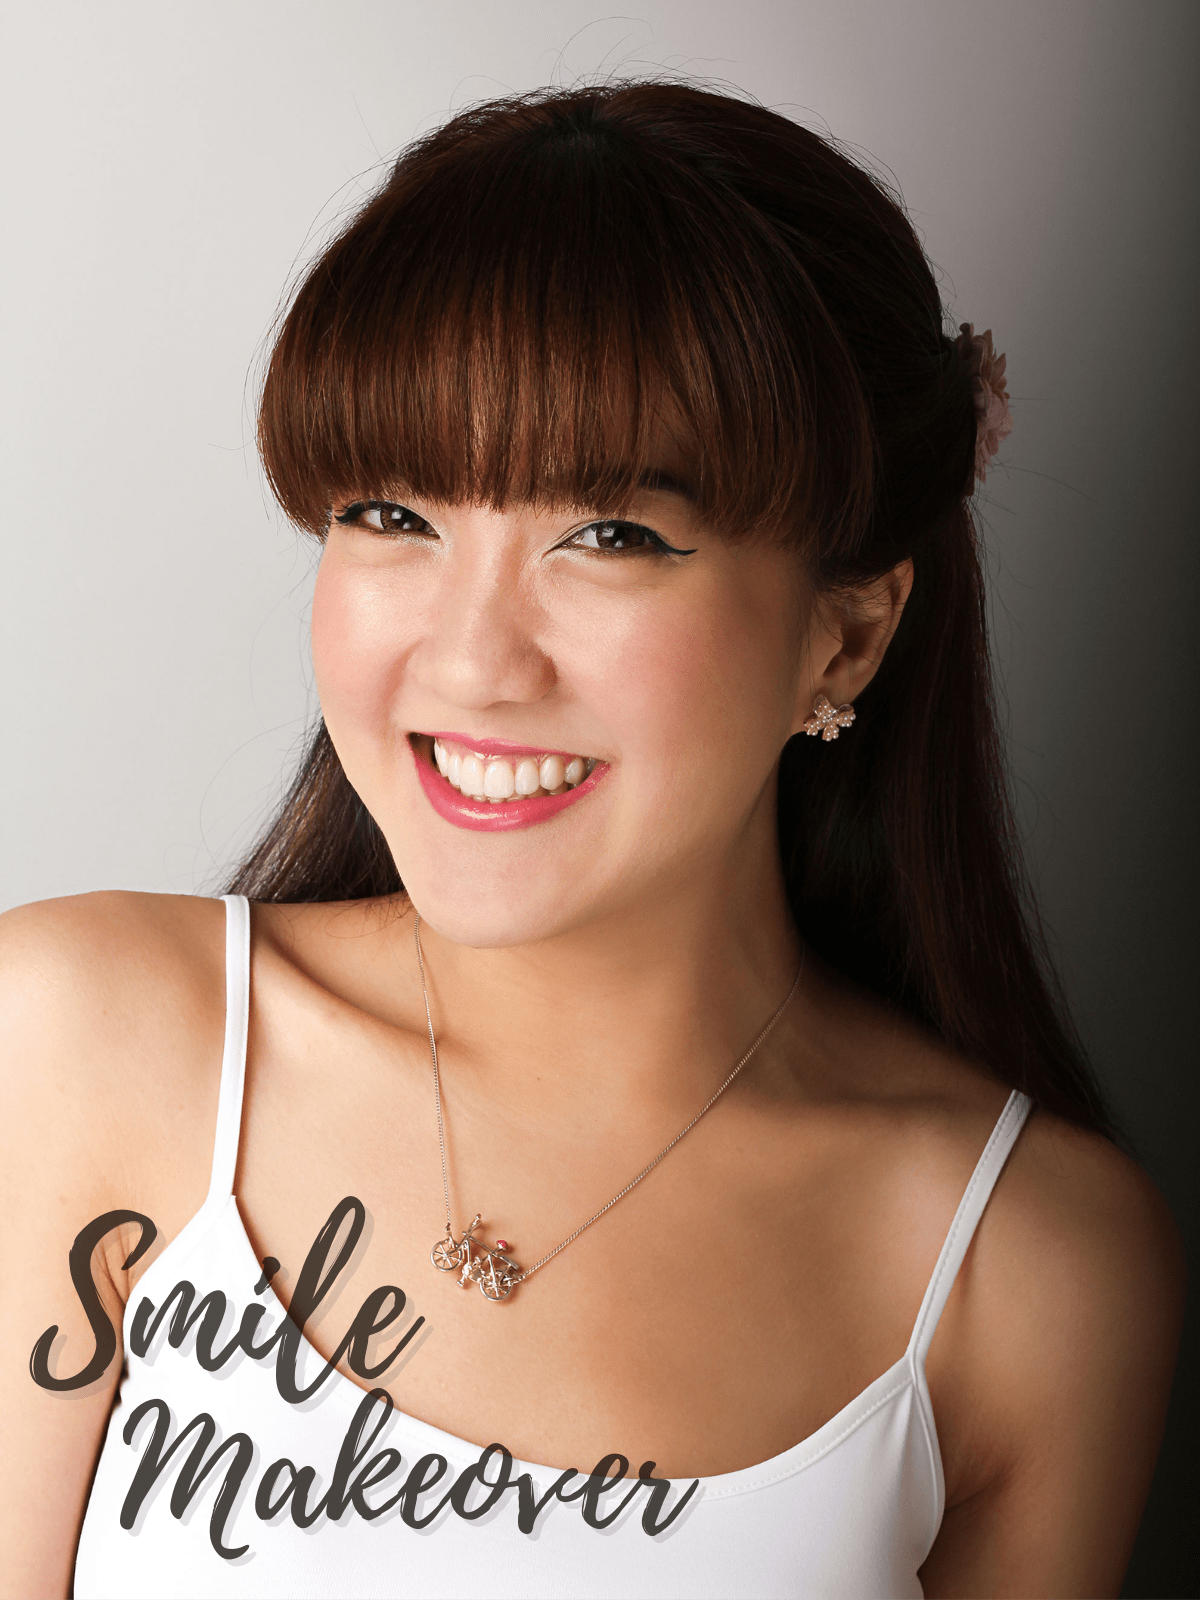 woman smiling showing teeth after smile makeover